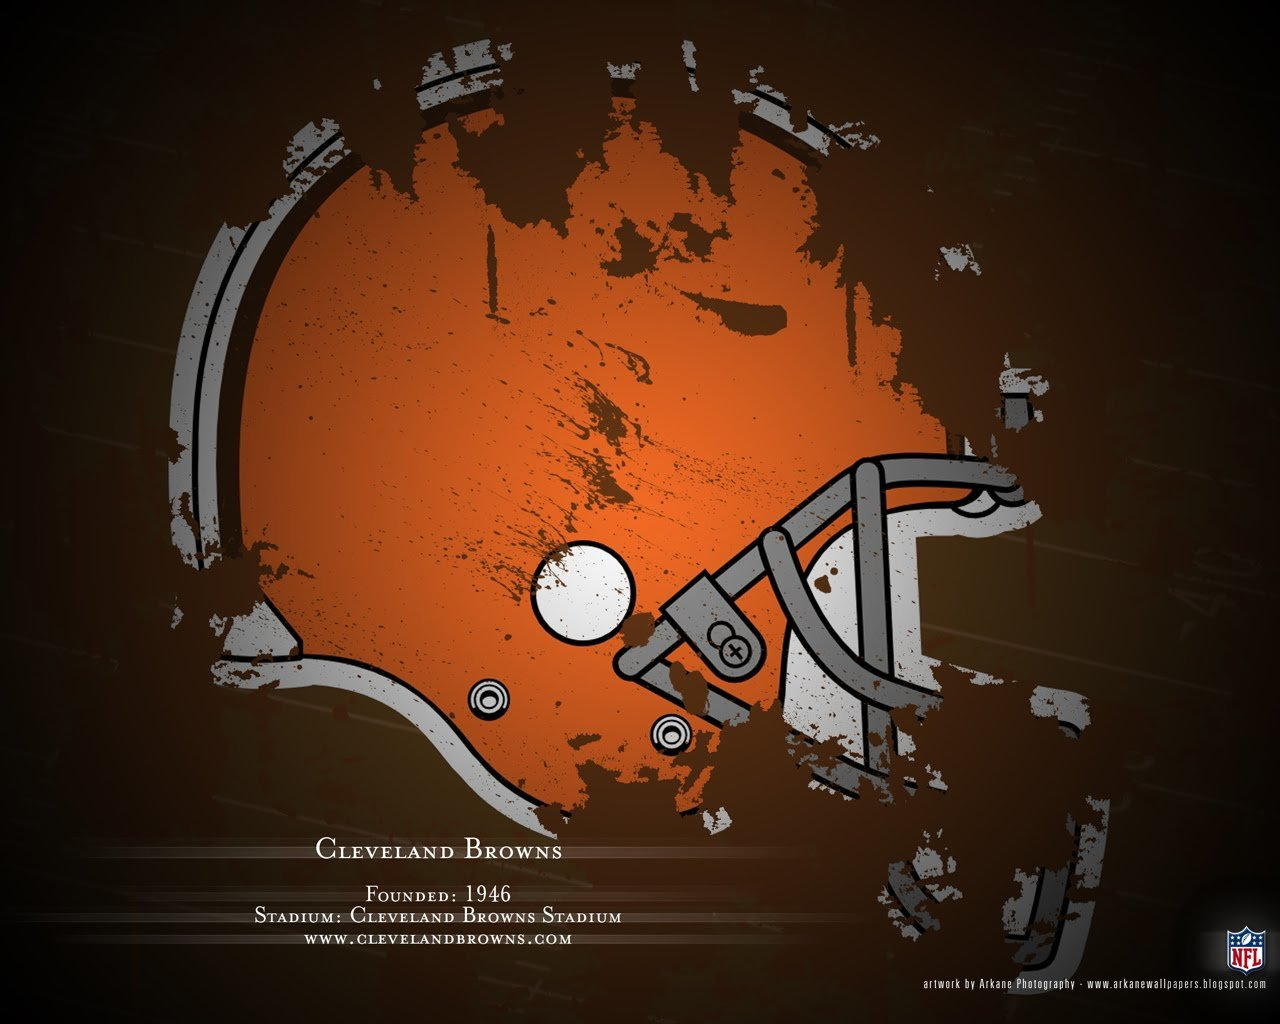 Cleveland Browns Wallpapers Hd For Desktop Backgrounds